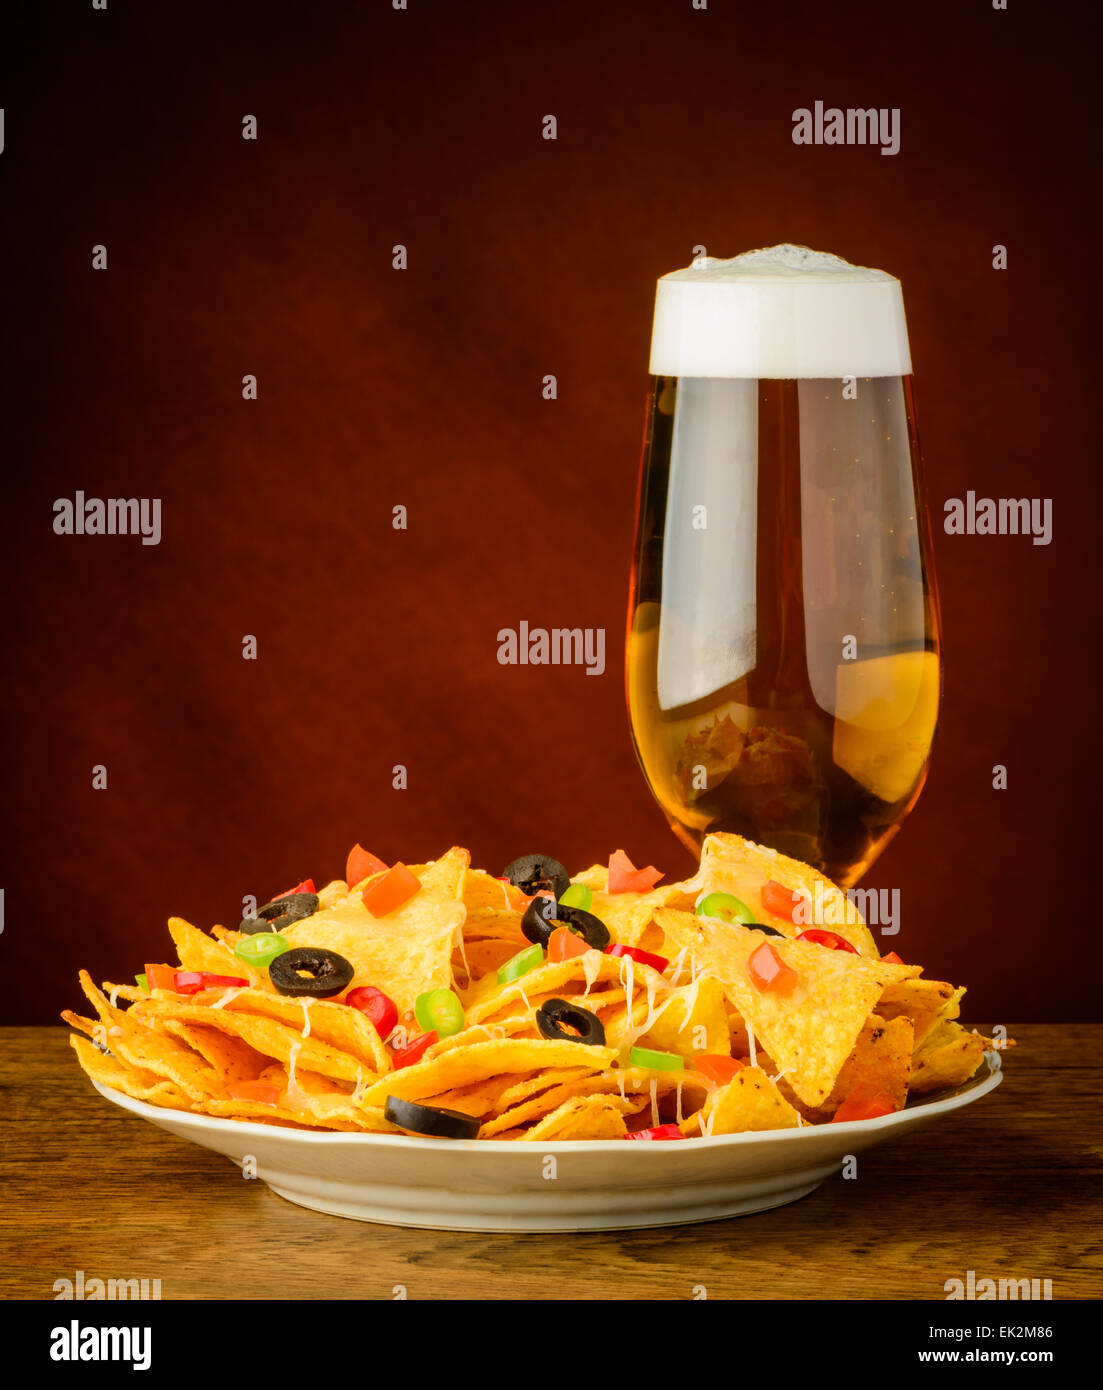 baked tortilla chips with cheese, olives and chili peppers and glass of beer Stock Photo